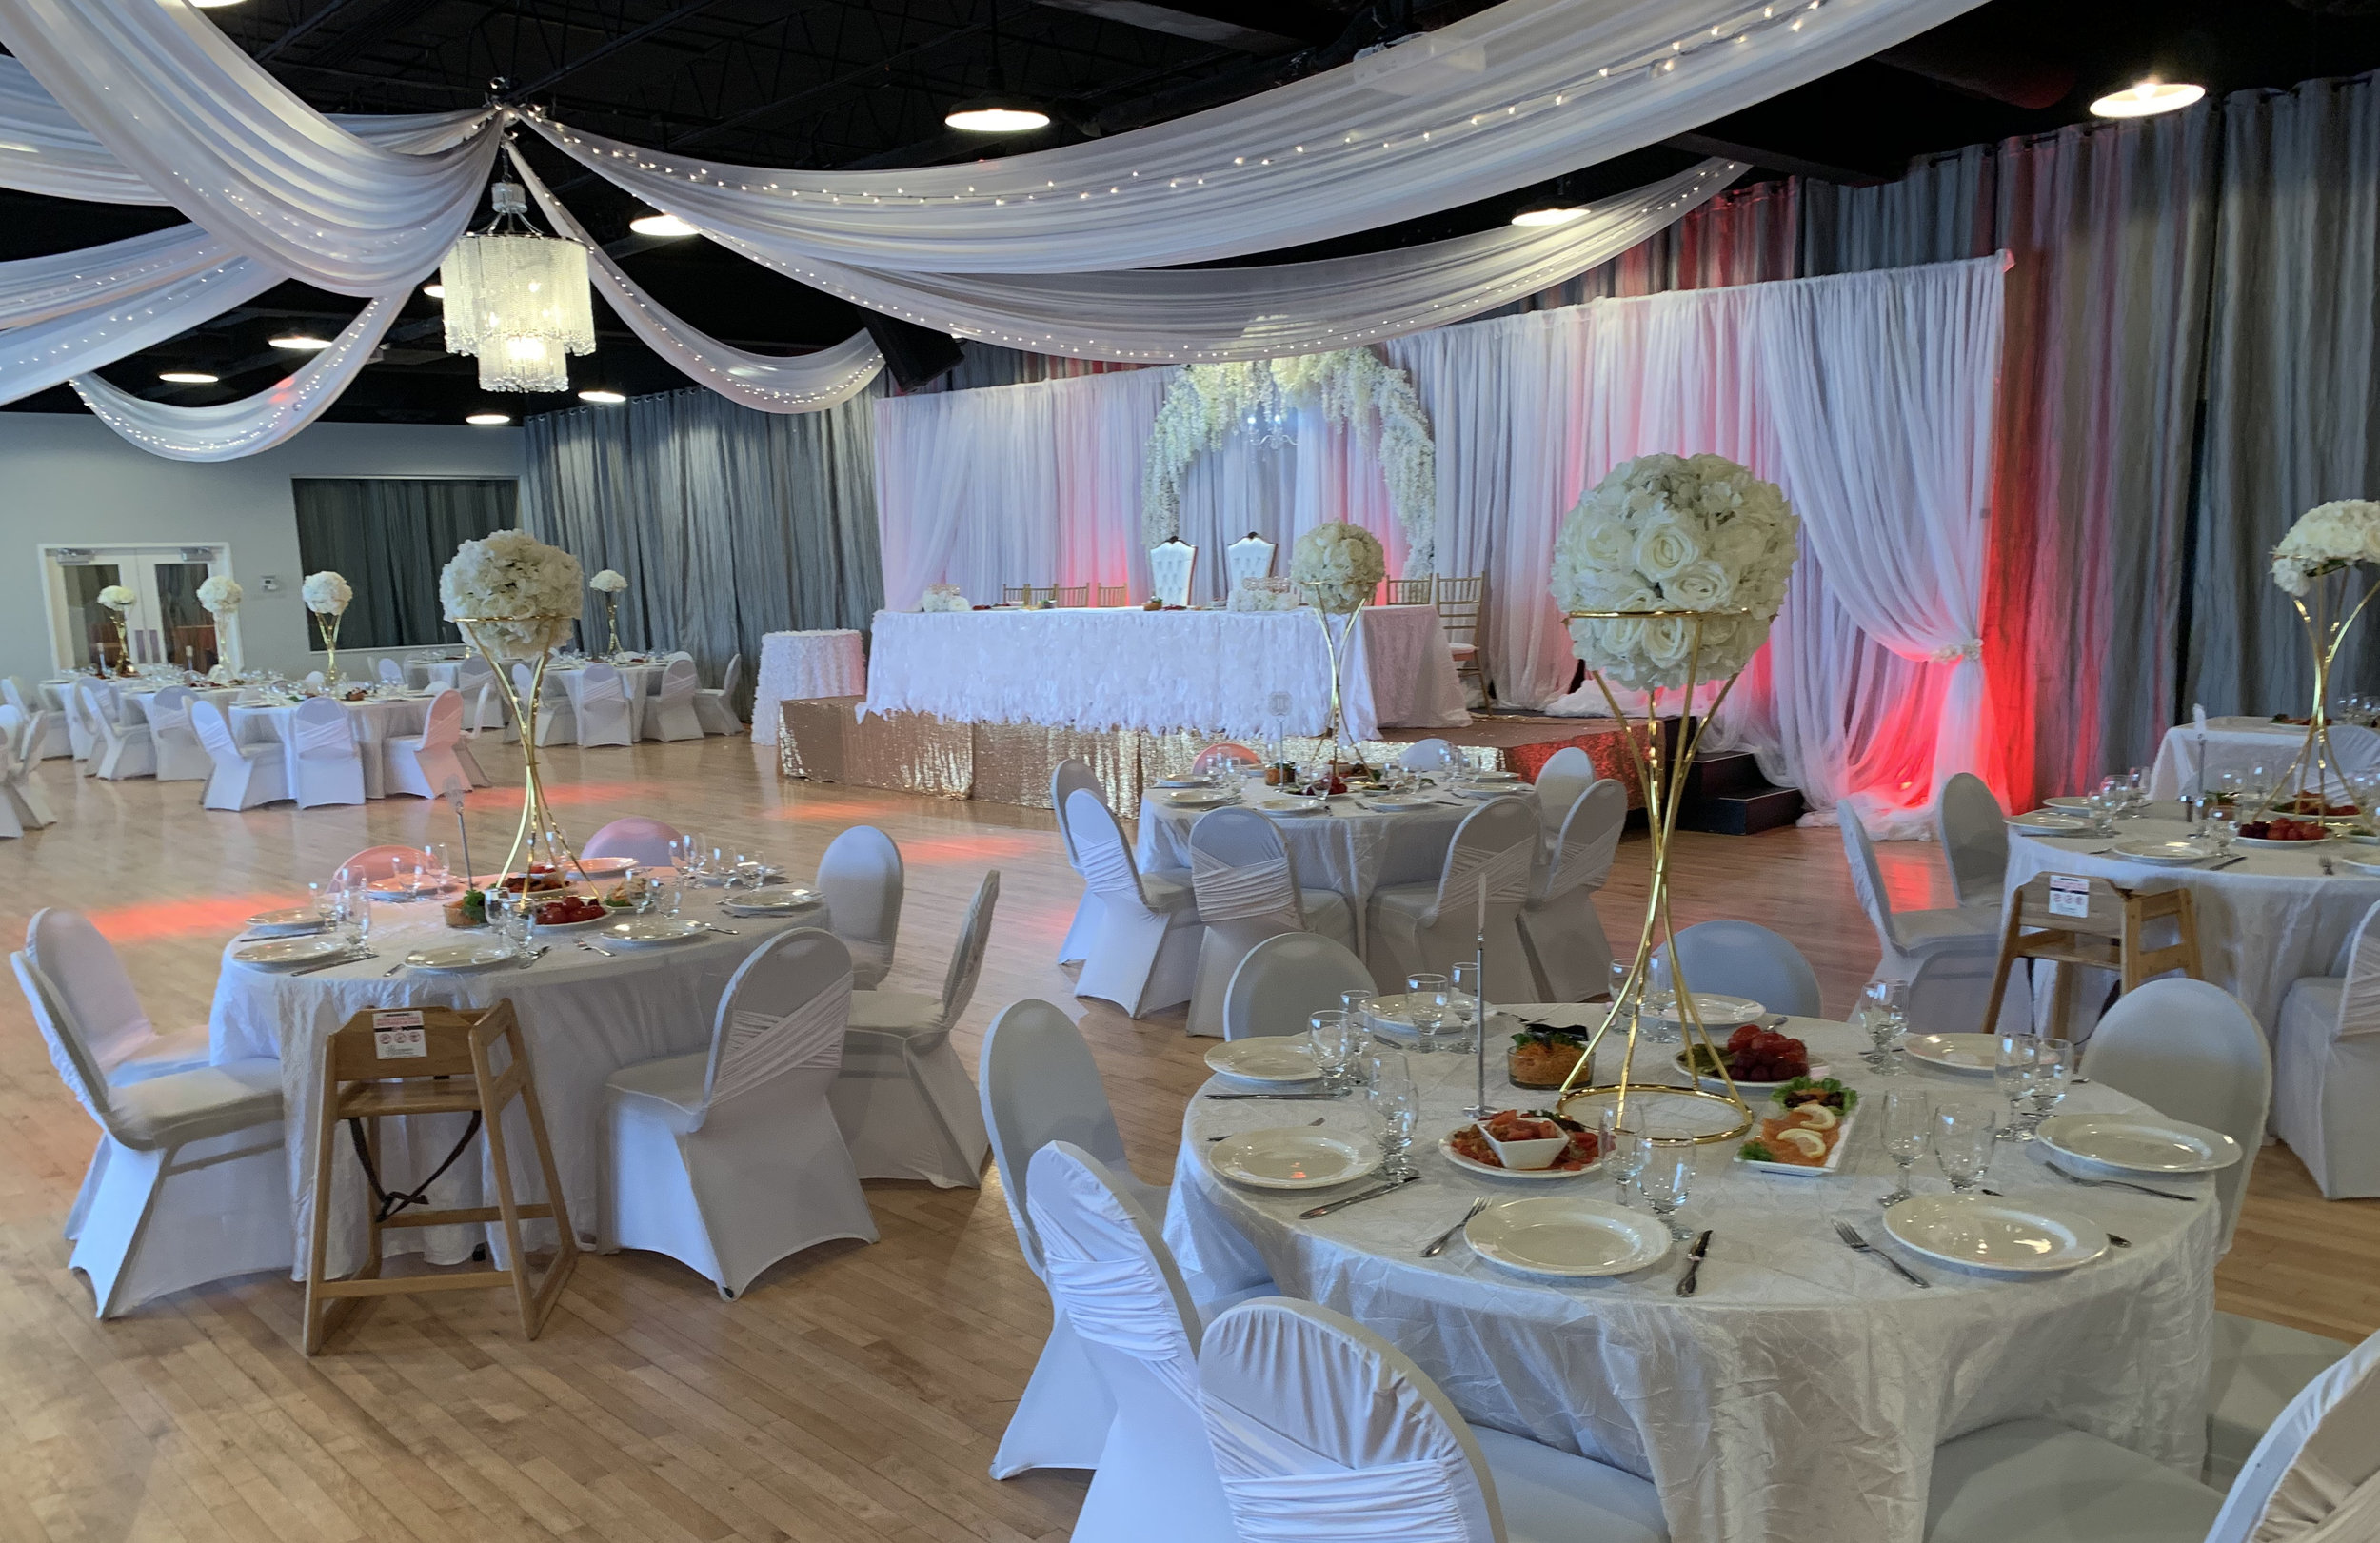 Midpointe Event Center Wedding Reception Pink and White.jpg